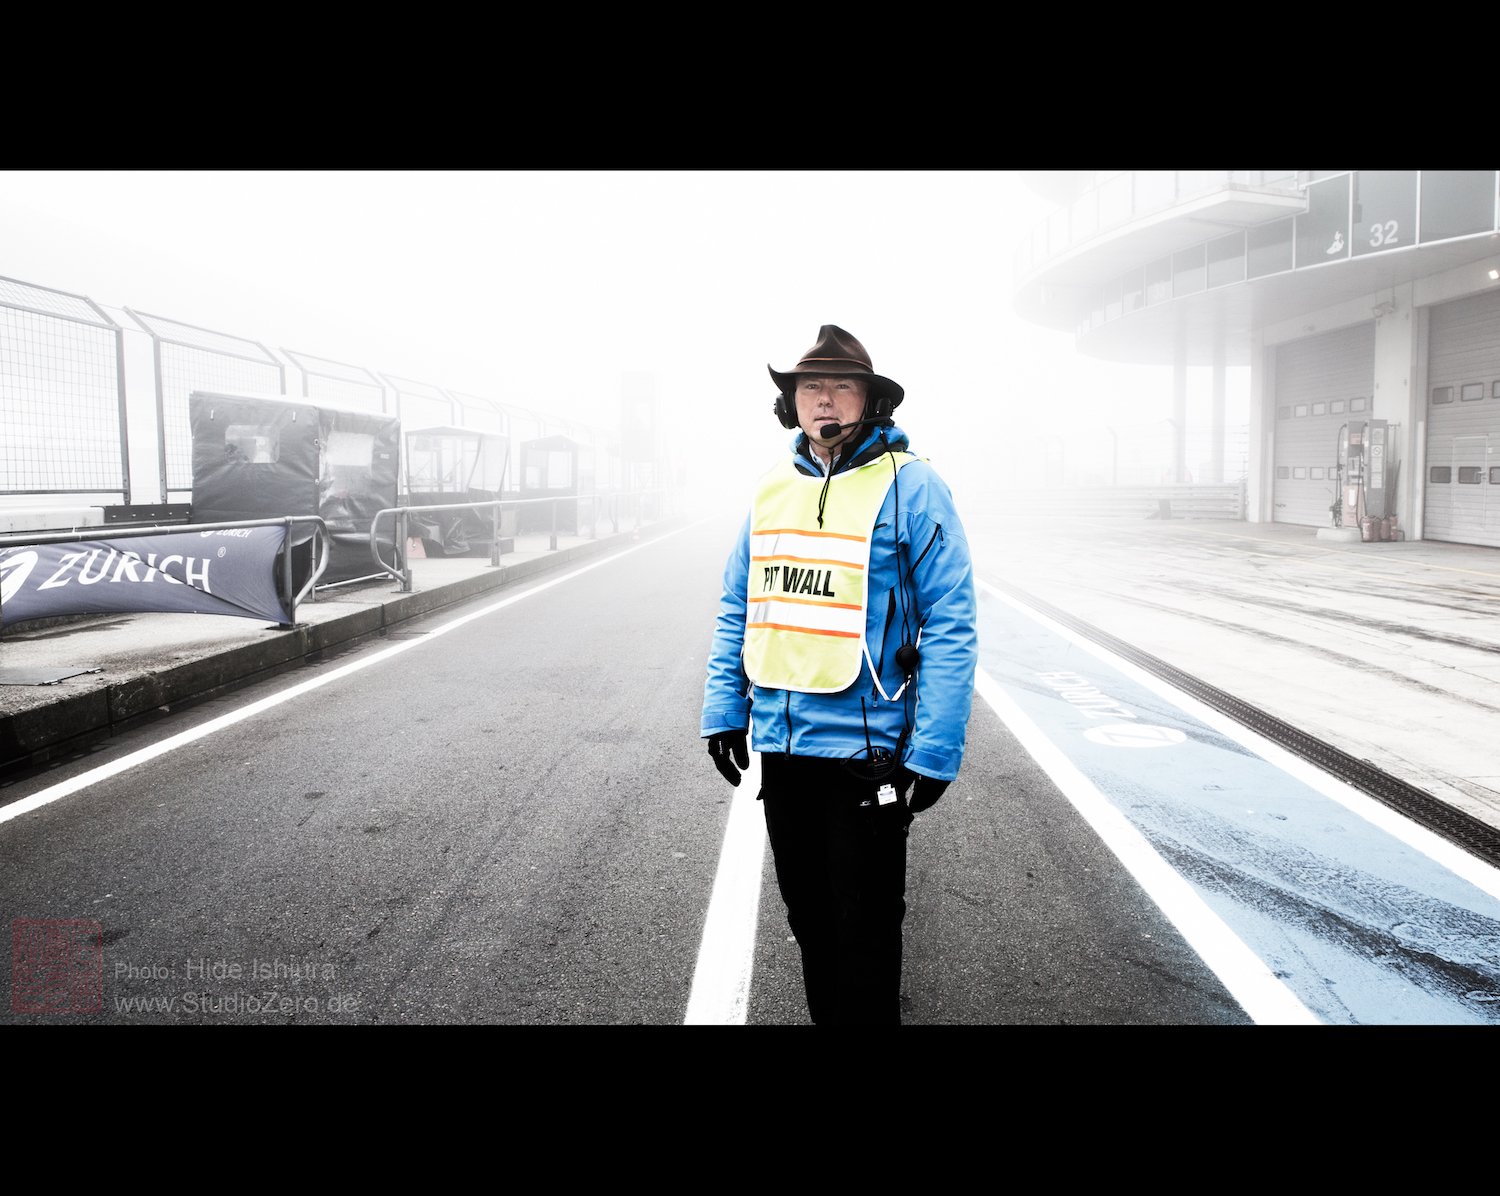 man stands alone on race track